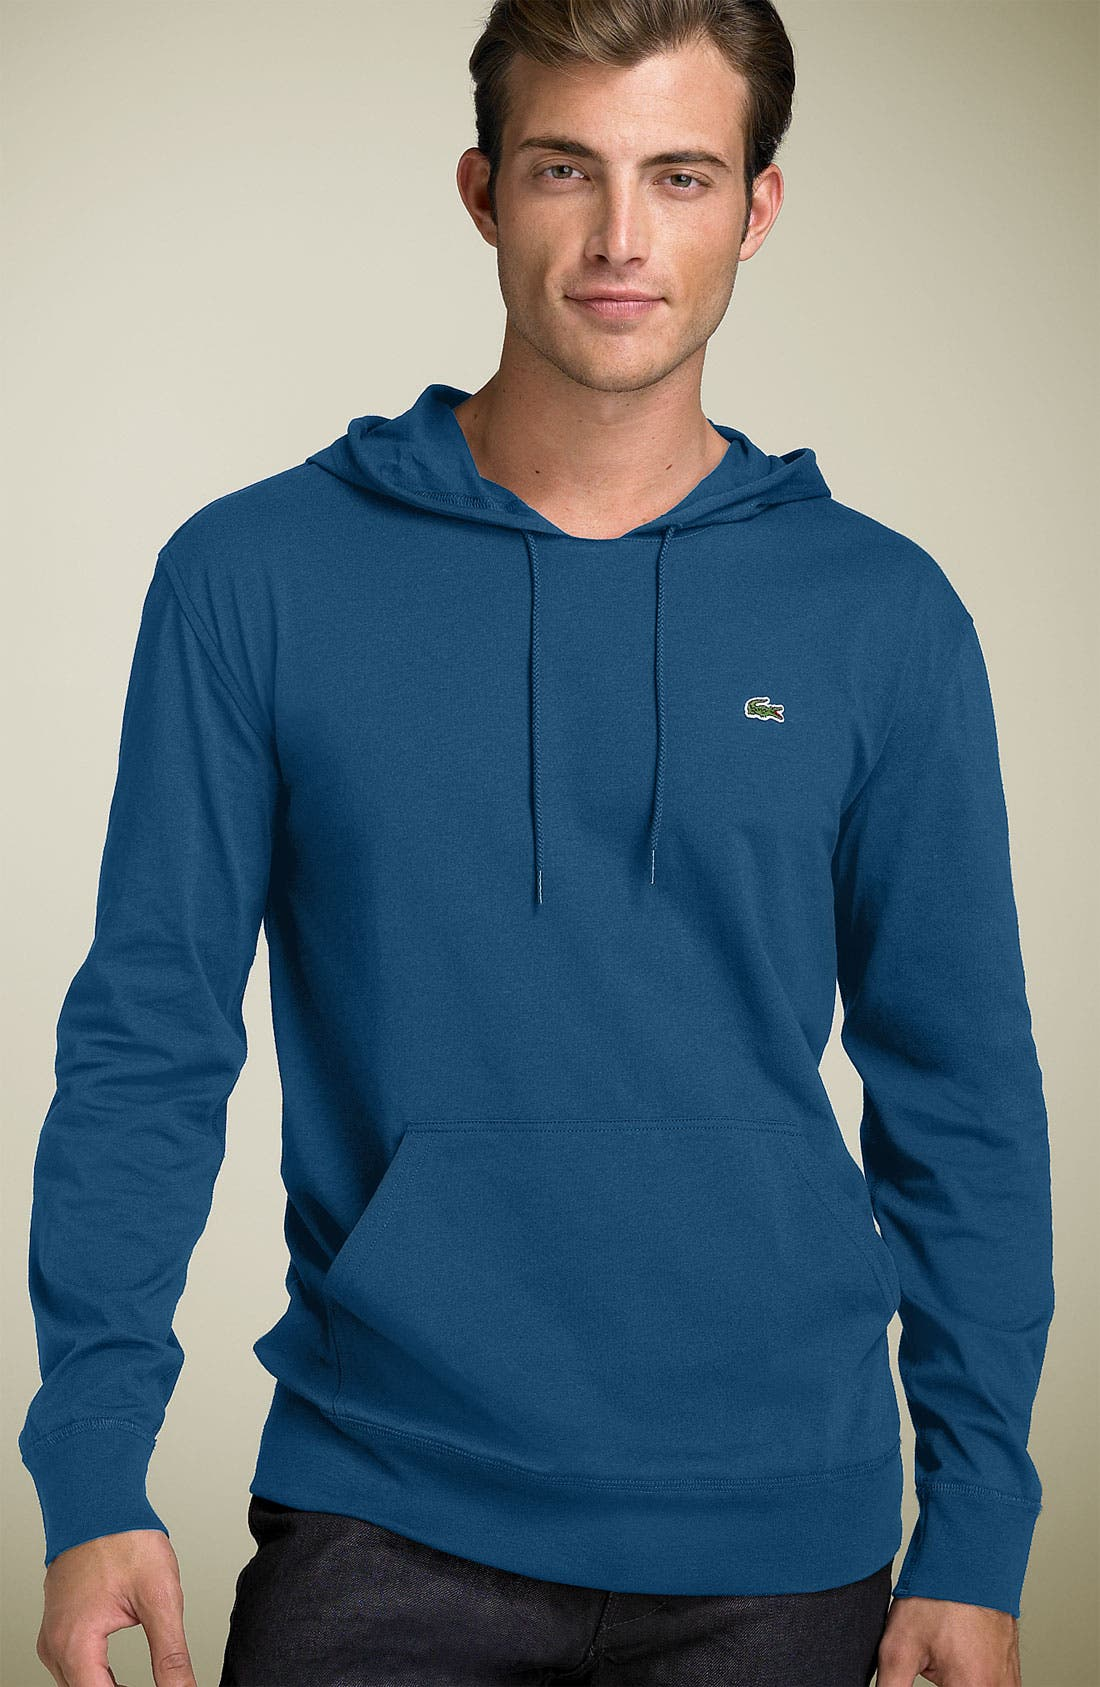 Alternate Image 1 Selected - Lacoste 'Perfect' Jersey Hoodie